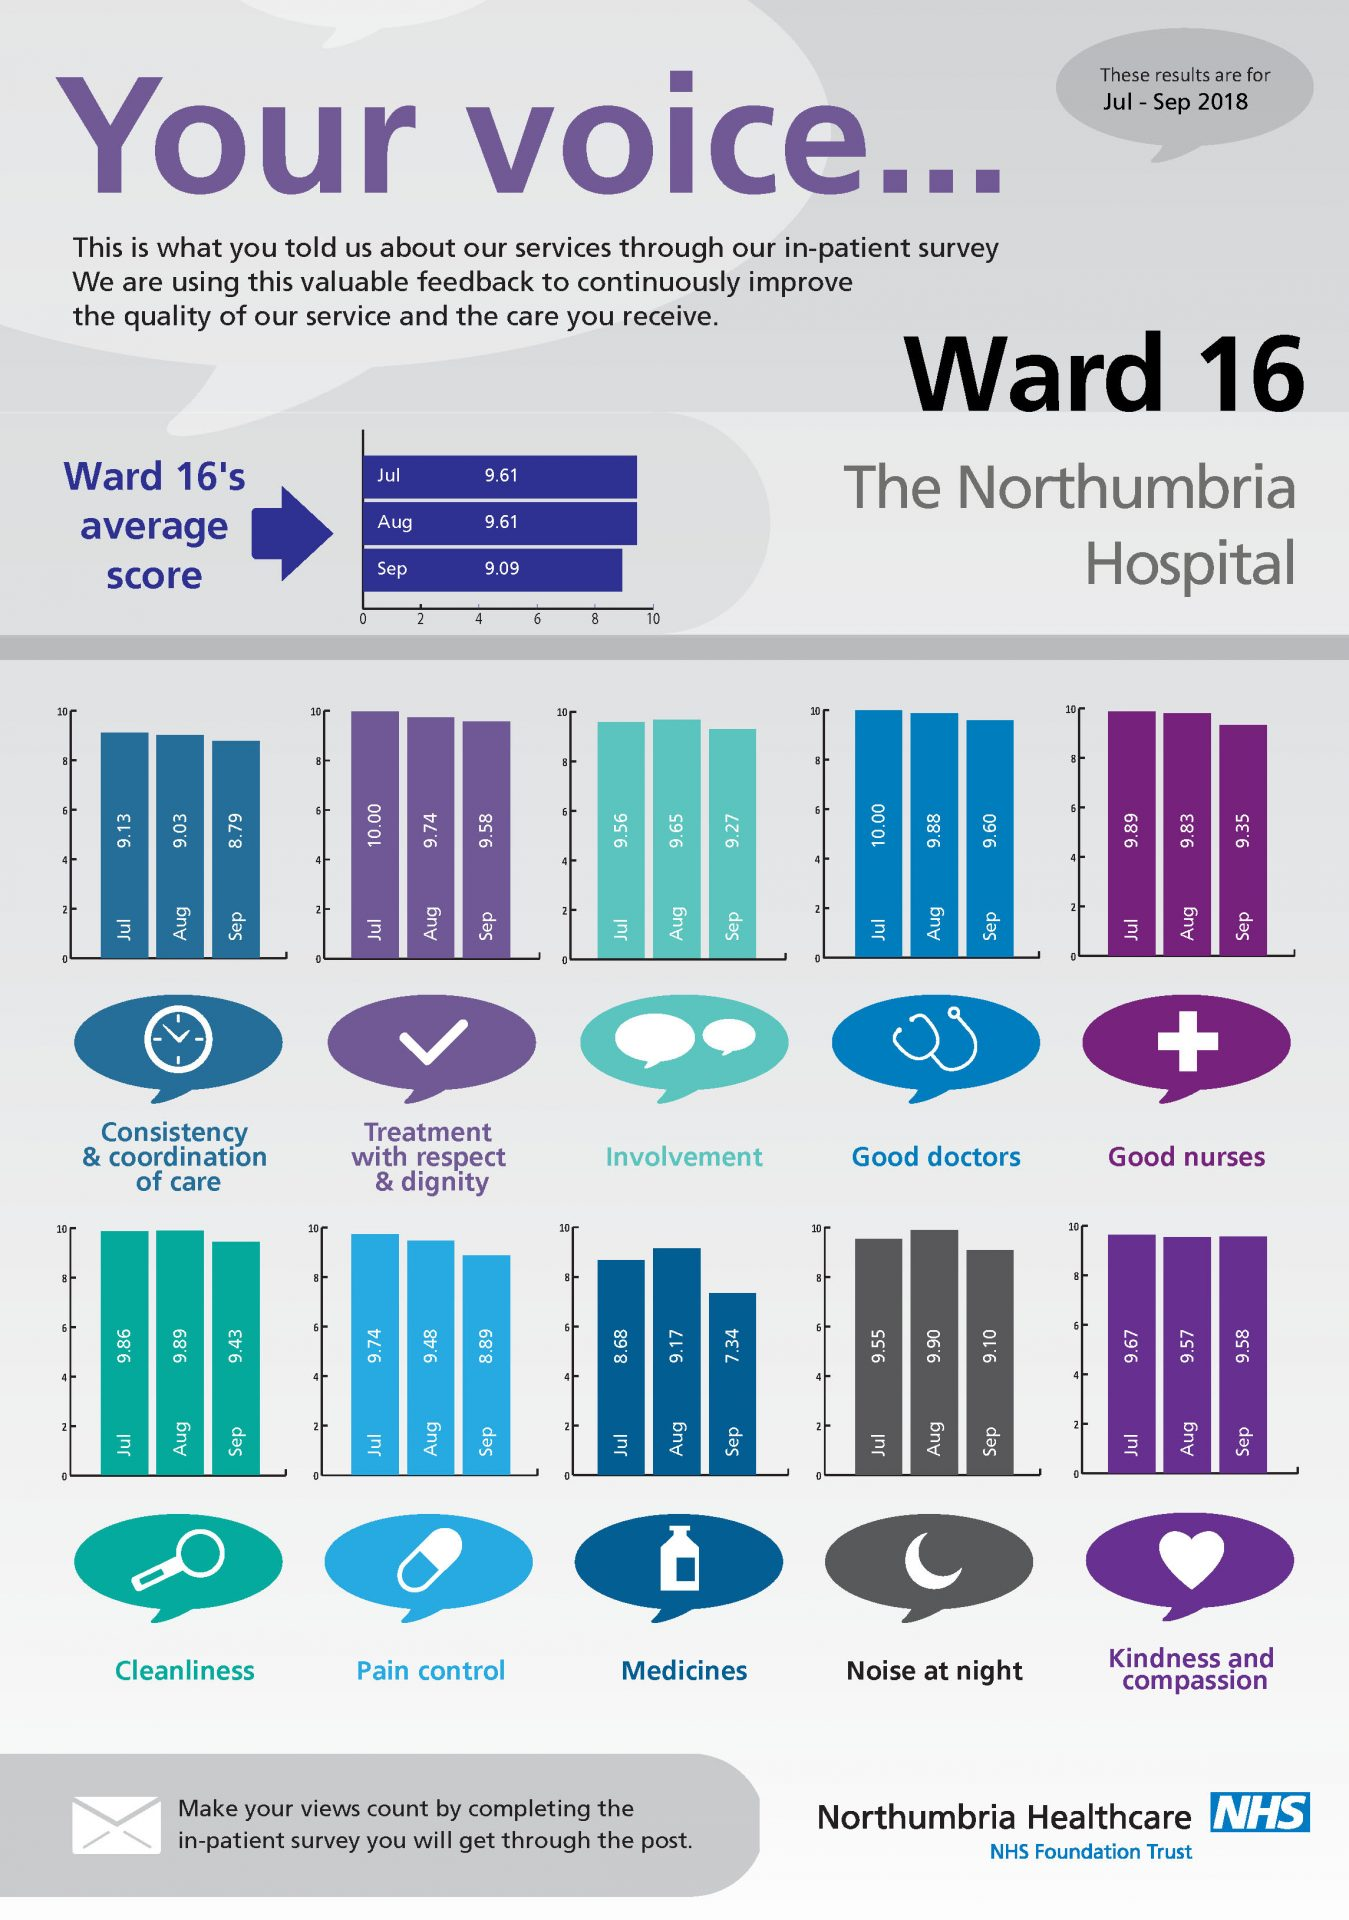 The Northumbria Hospital - Ward 16